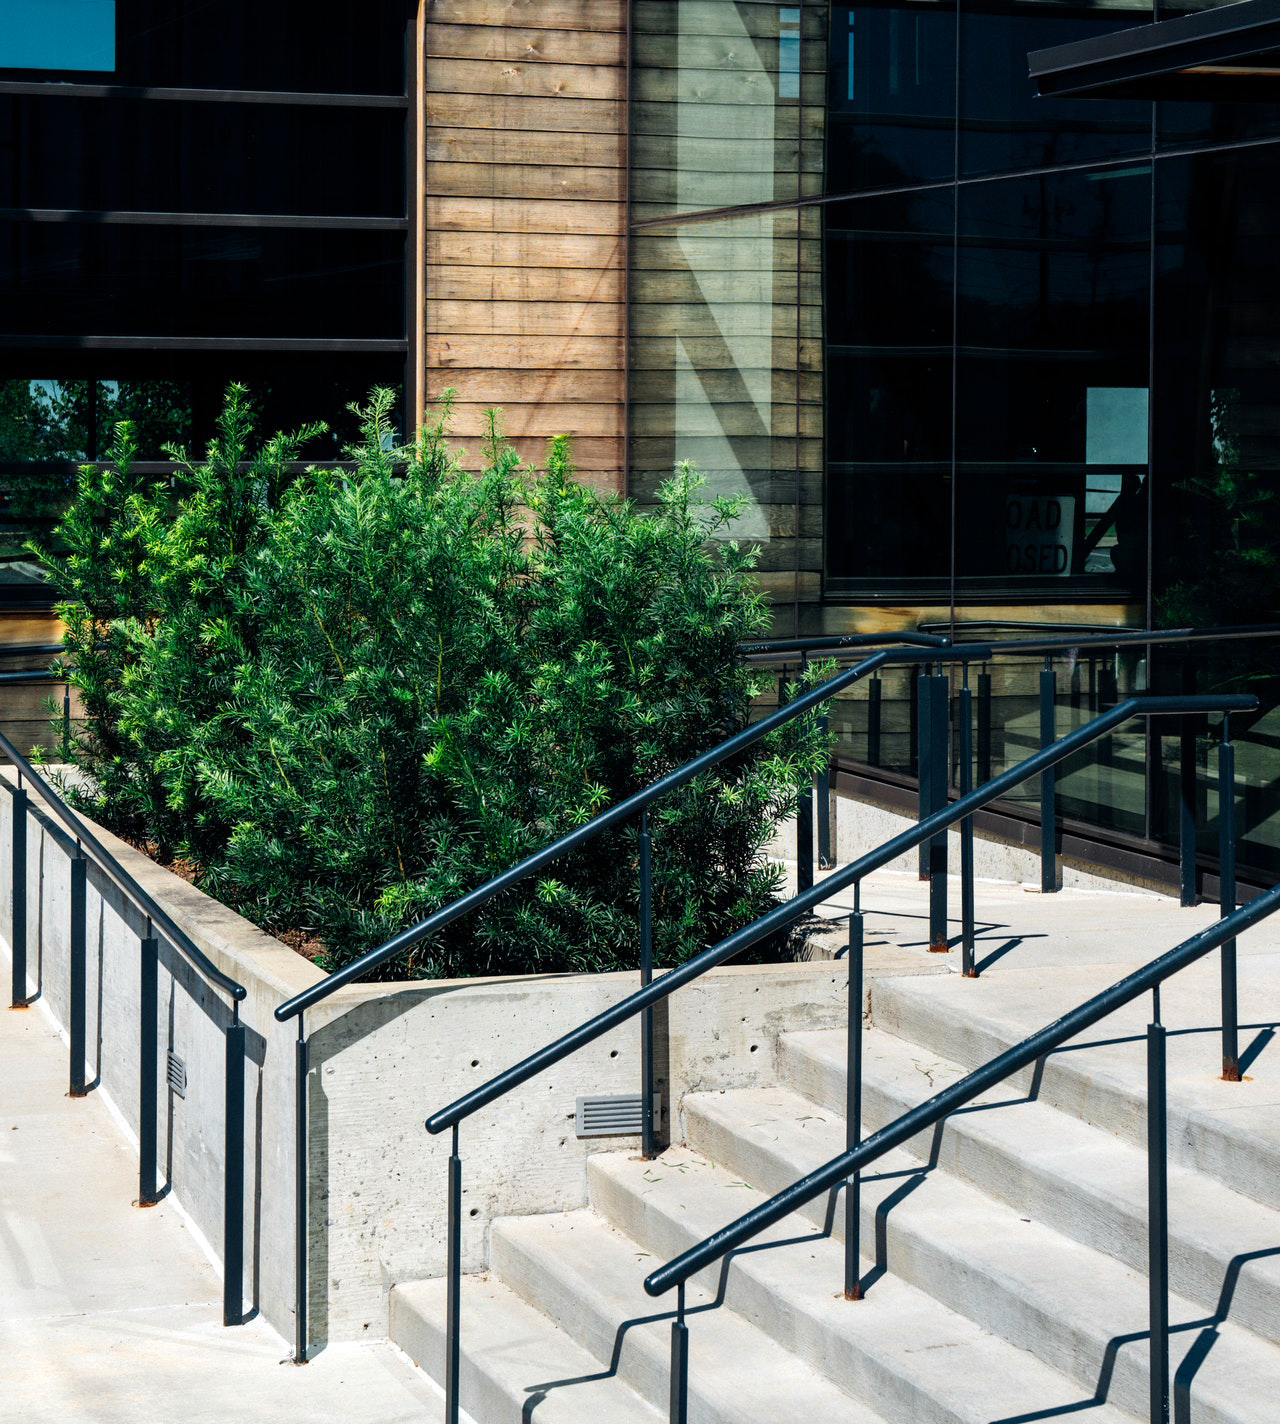 ᑕ ᑐ How To Choose The Best Handrails For Outdoor Steps